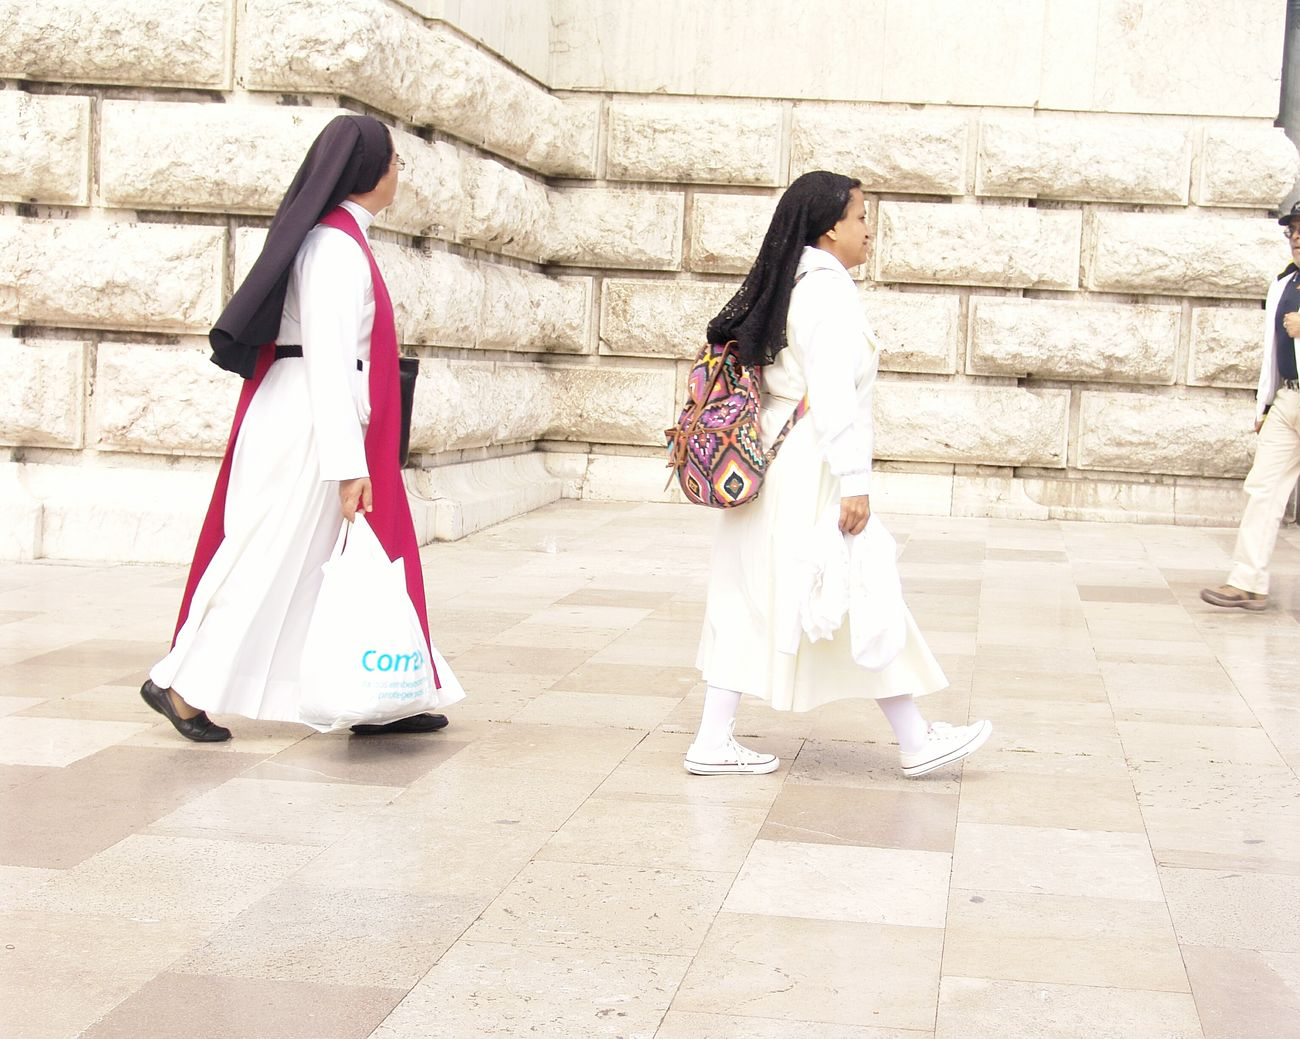 Respect ,style,elegance,Converse My Year My View Religions Casual Day Casualphotography Casual Look Focus On Details Outside Photography Personal Perspective Perspective Photography Lifestyles Nuns Nun